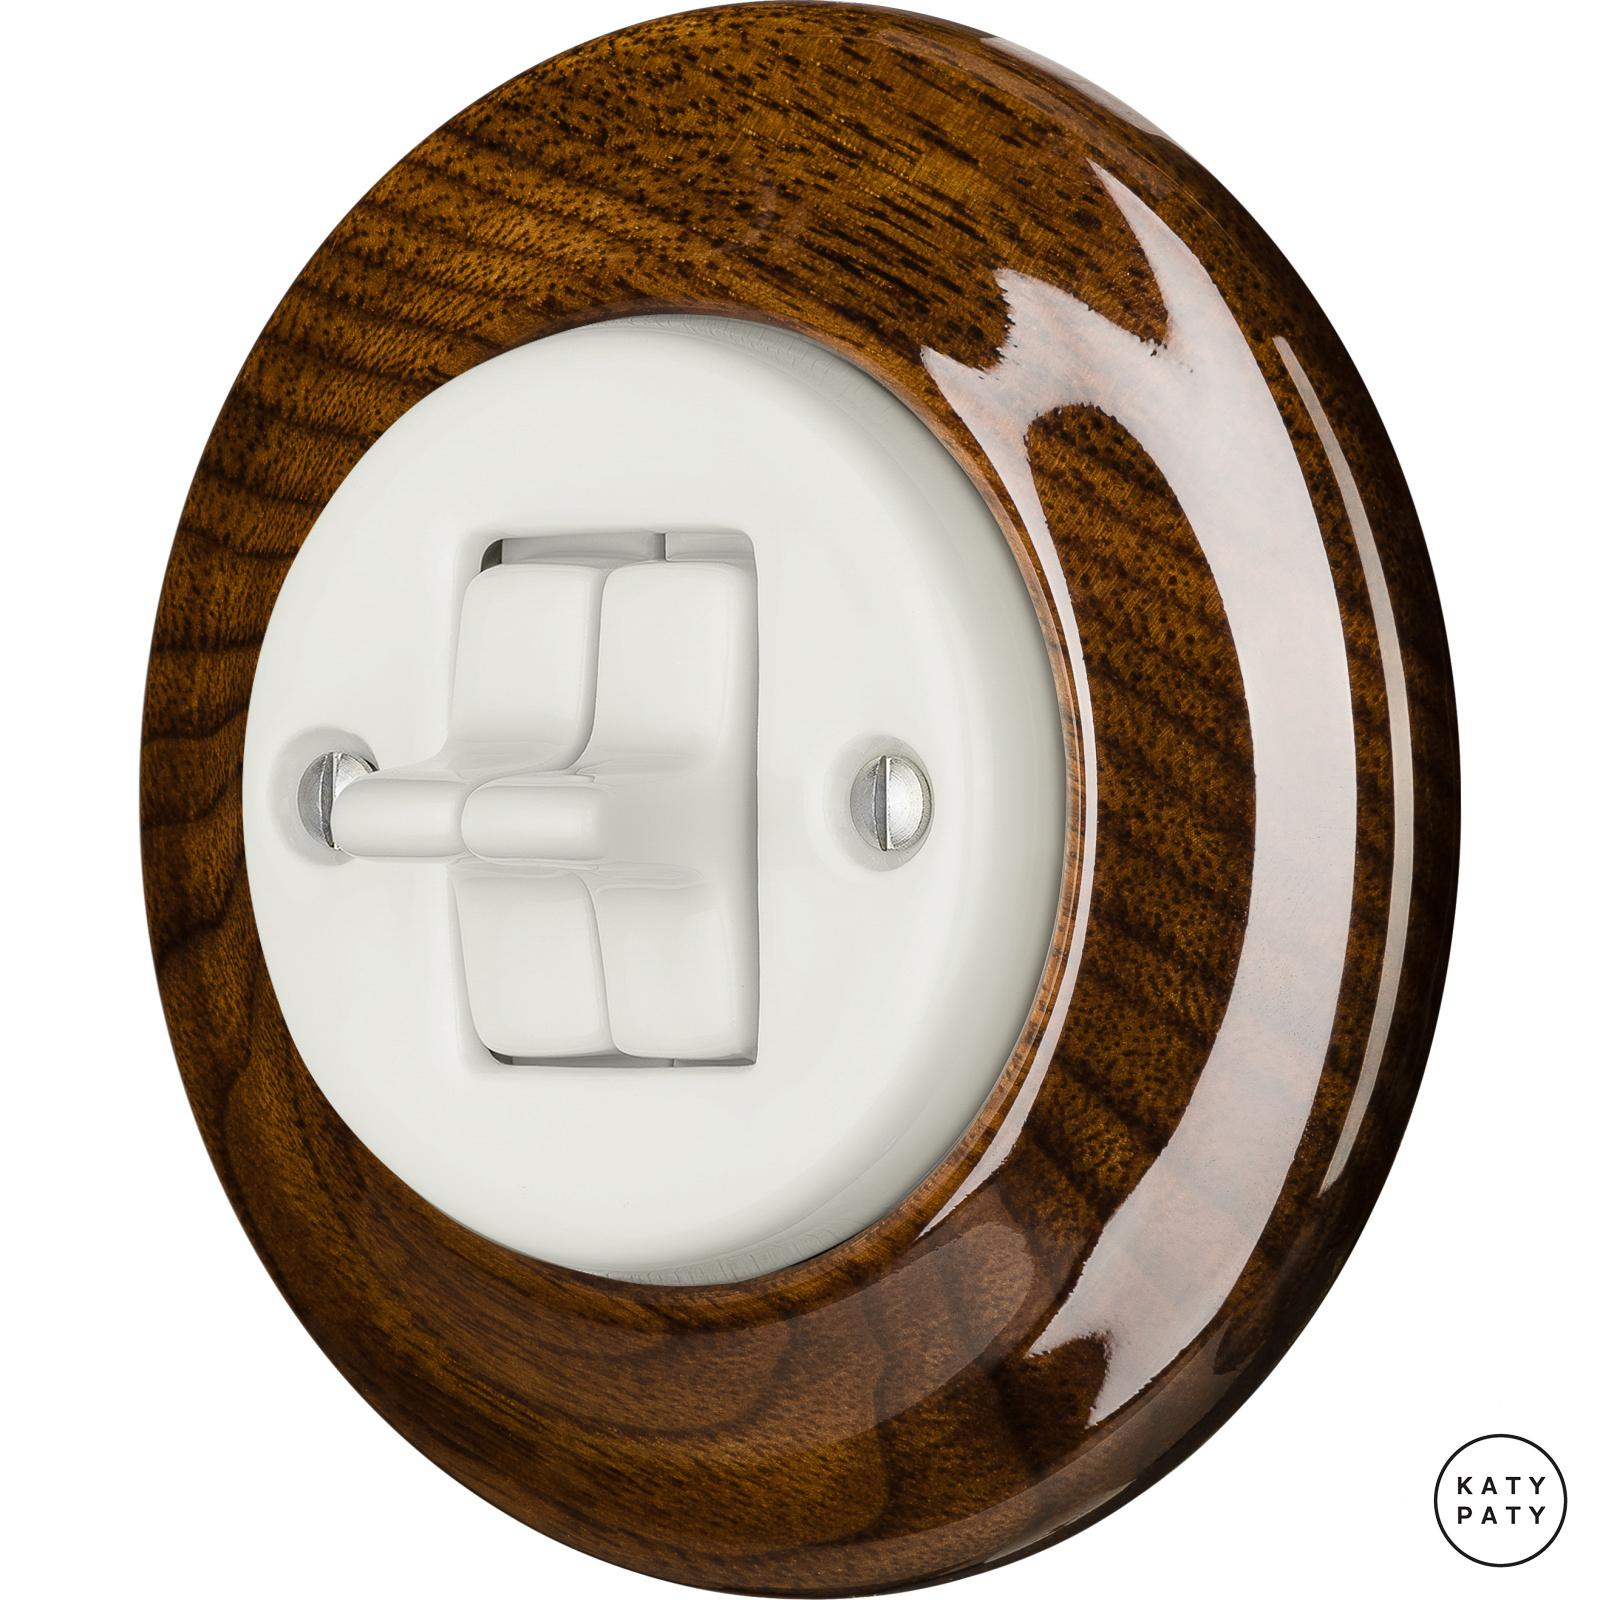 Porcelain toggle switches - a double gang ()  - NUCLEUS | Katy Paty